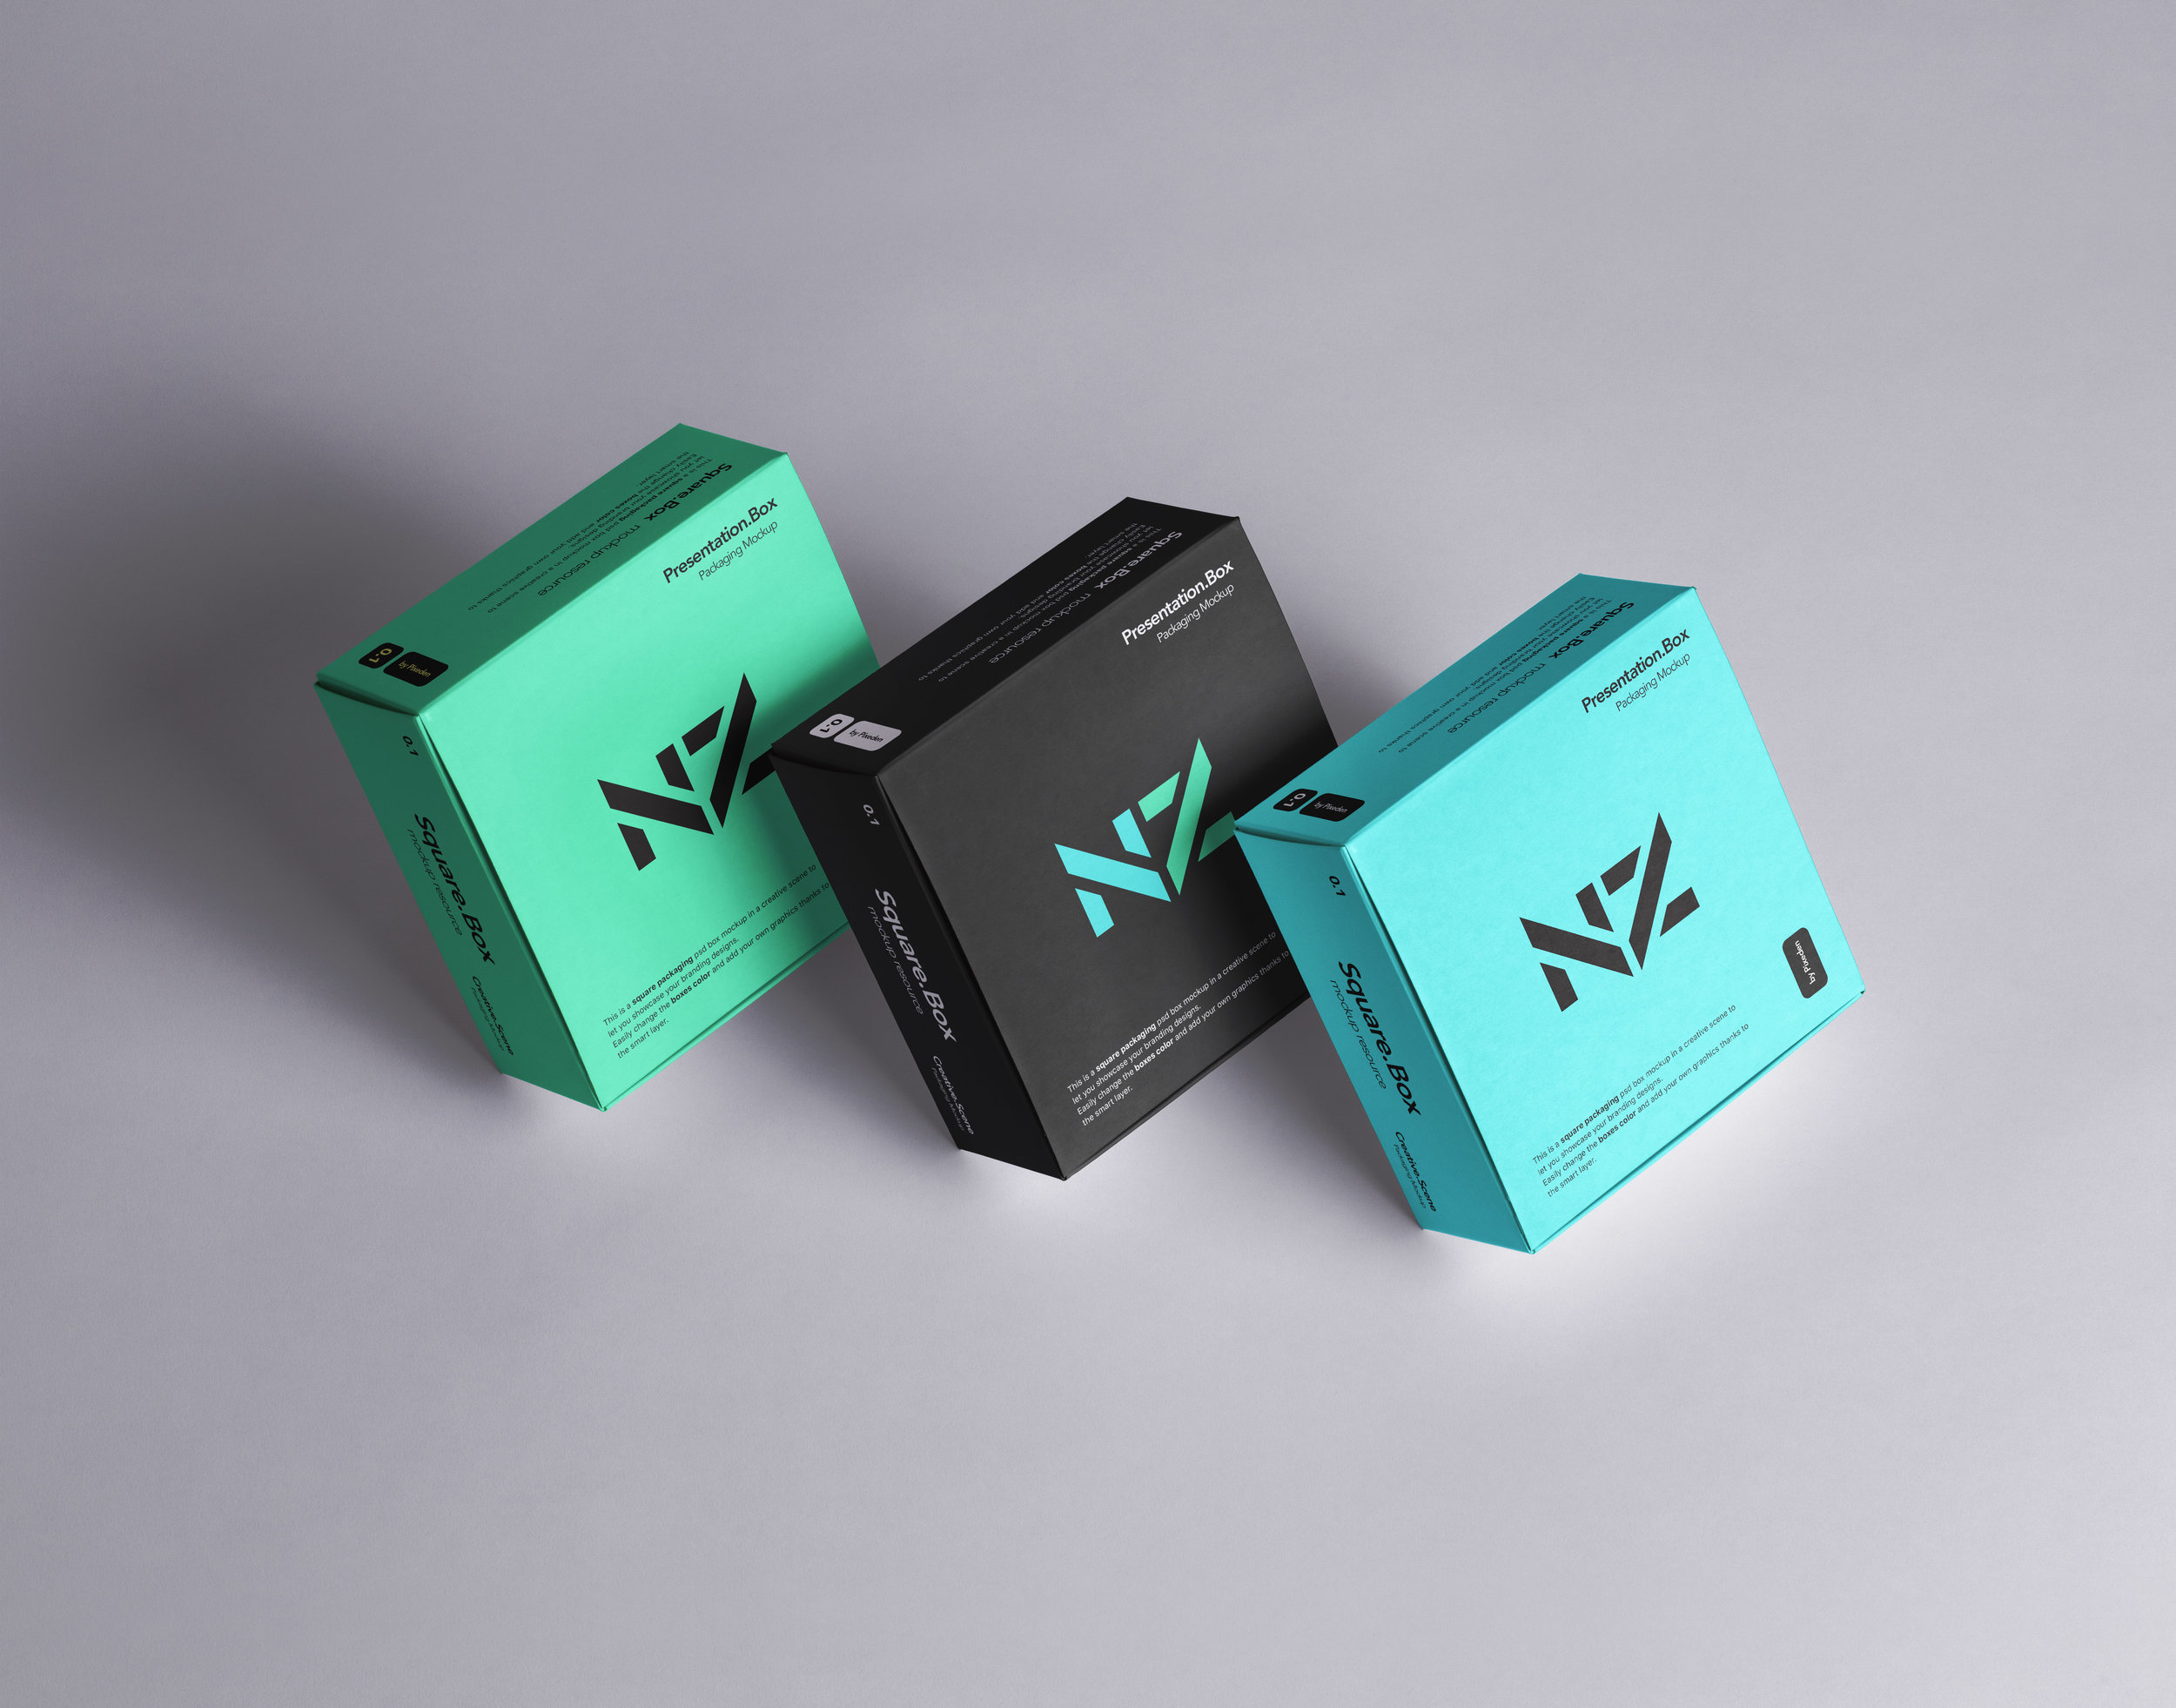 Square-Boxes-Packaging-Mockup-vol2-NZ.jpg